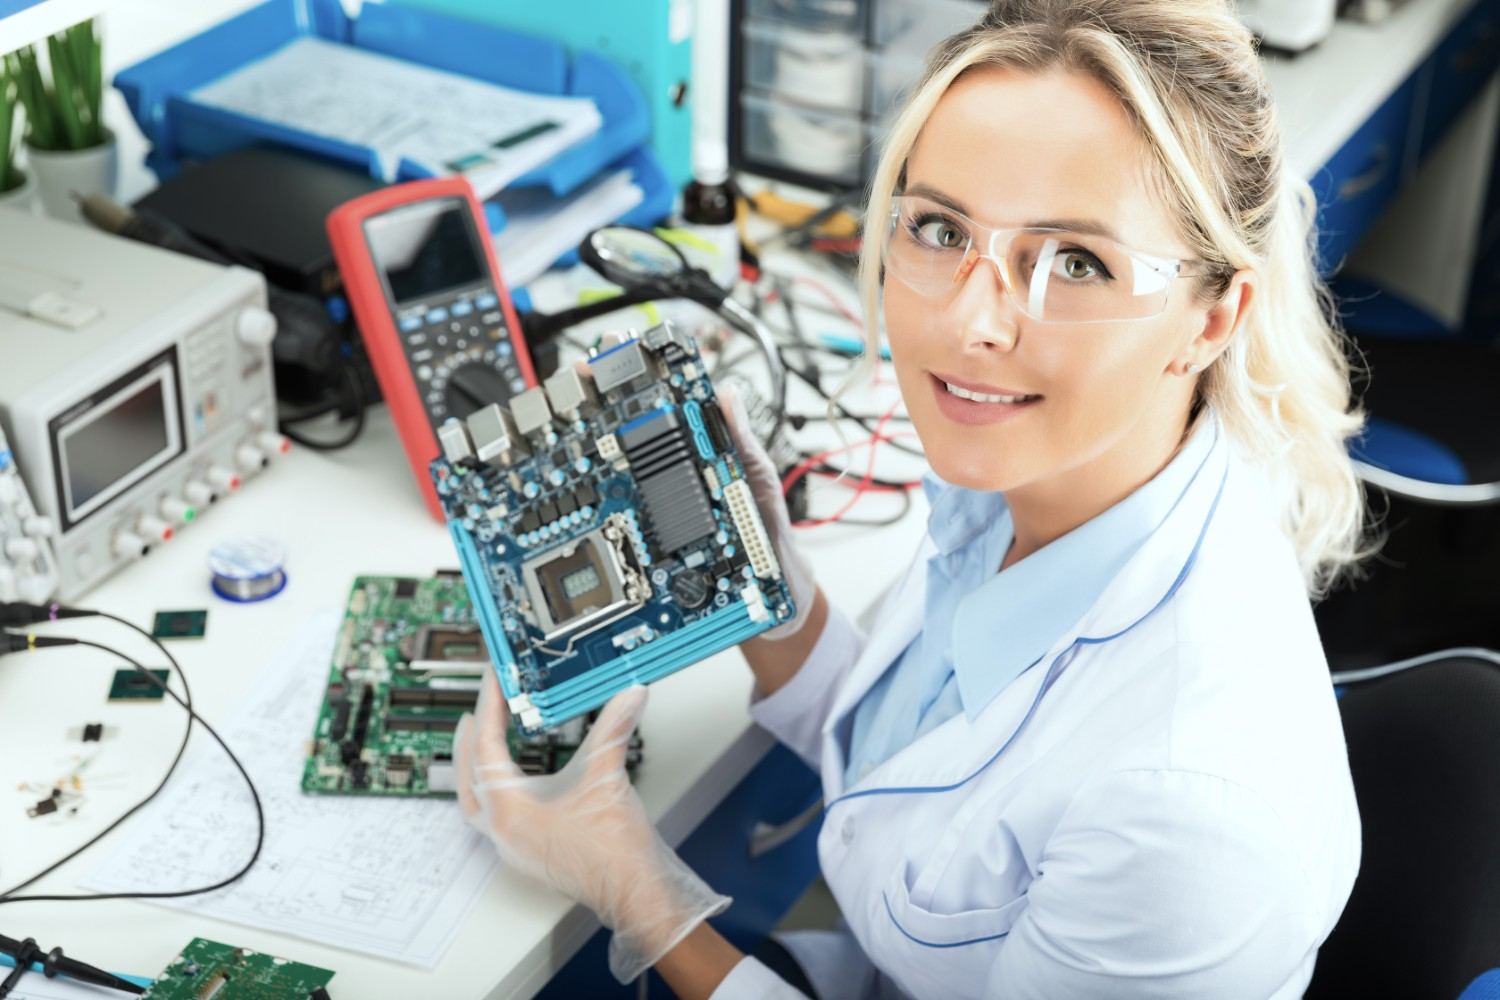 Female electronic engineer holding computer motherboard in hands in the laboratory